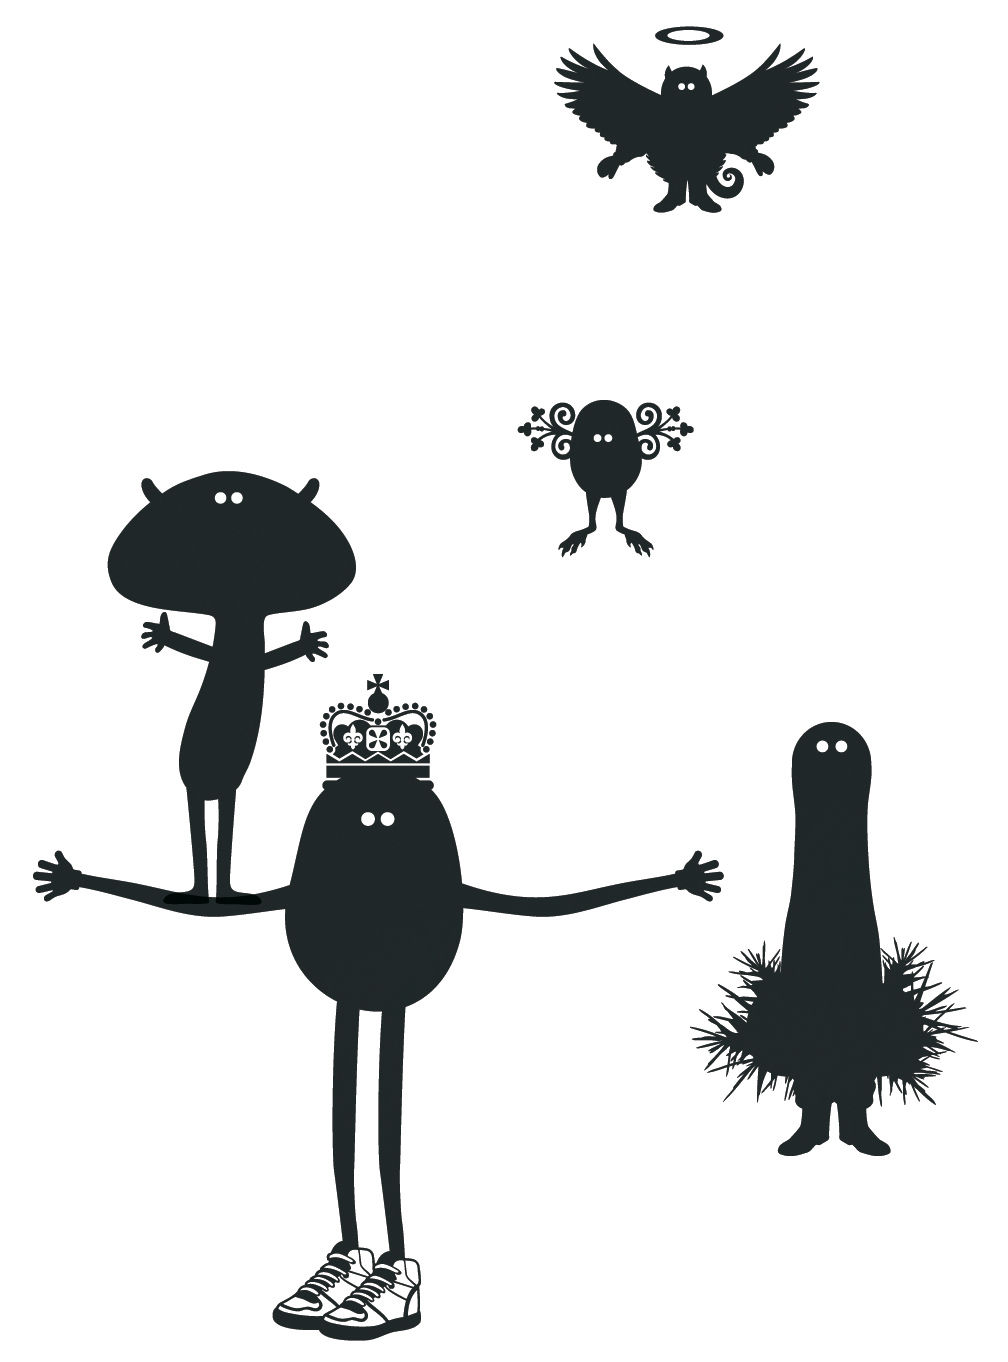 Déco - Stickers, papiers peints & posters - Sticker Potato Queen 1 - Domestic - Noir - Vinyle